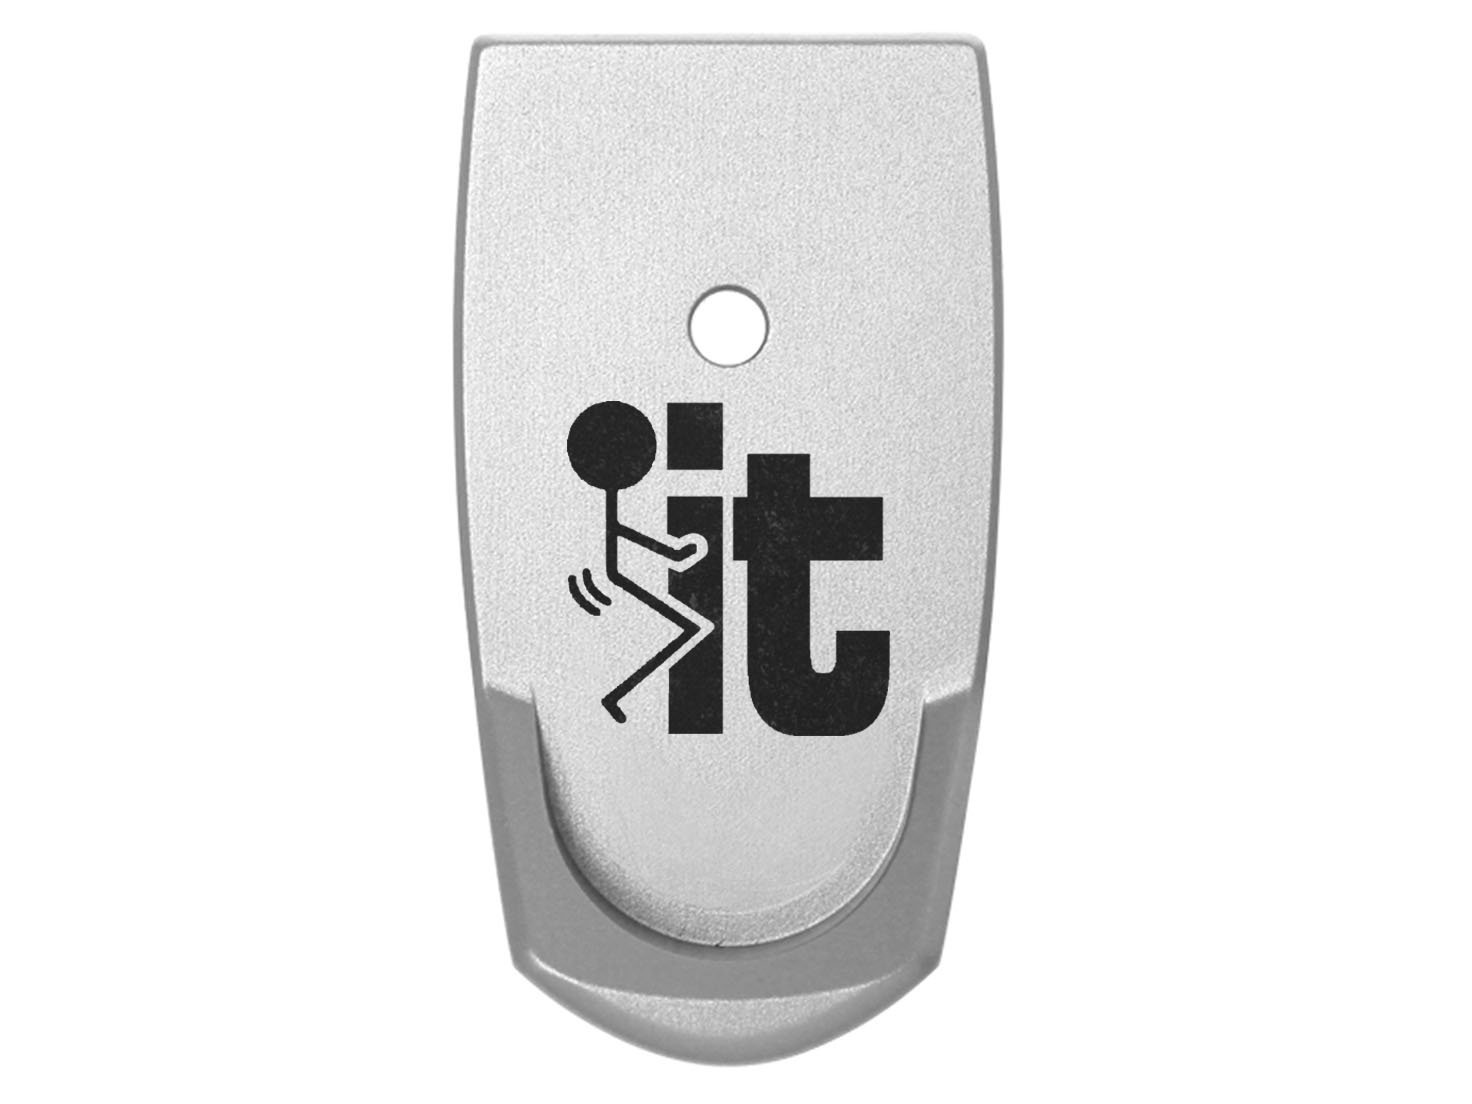 F It Stickman Grip Extension Floor Base Plate V2 Silver Silver for S&W Smith & Wesson Shield 9mm .40